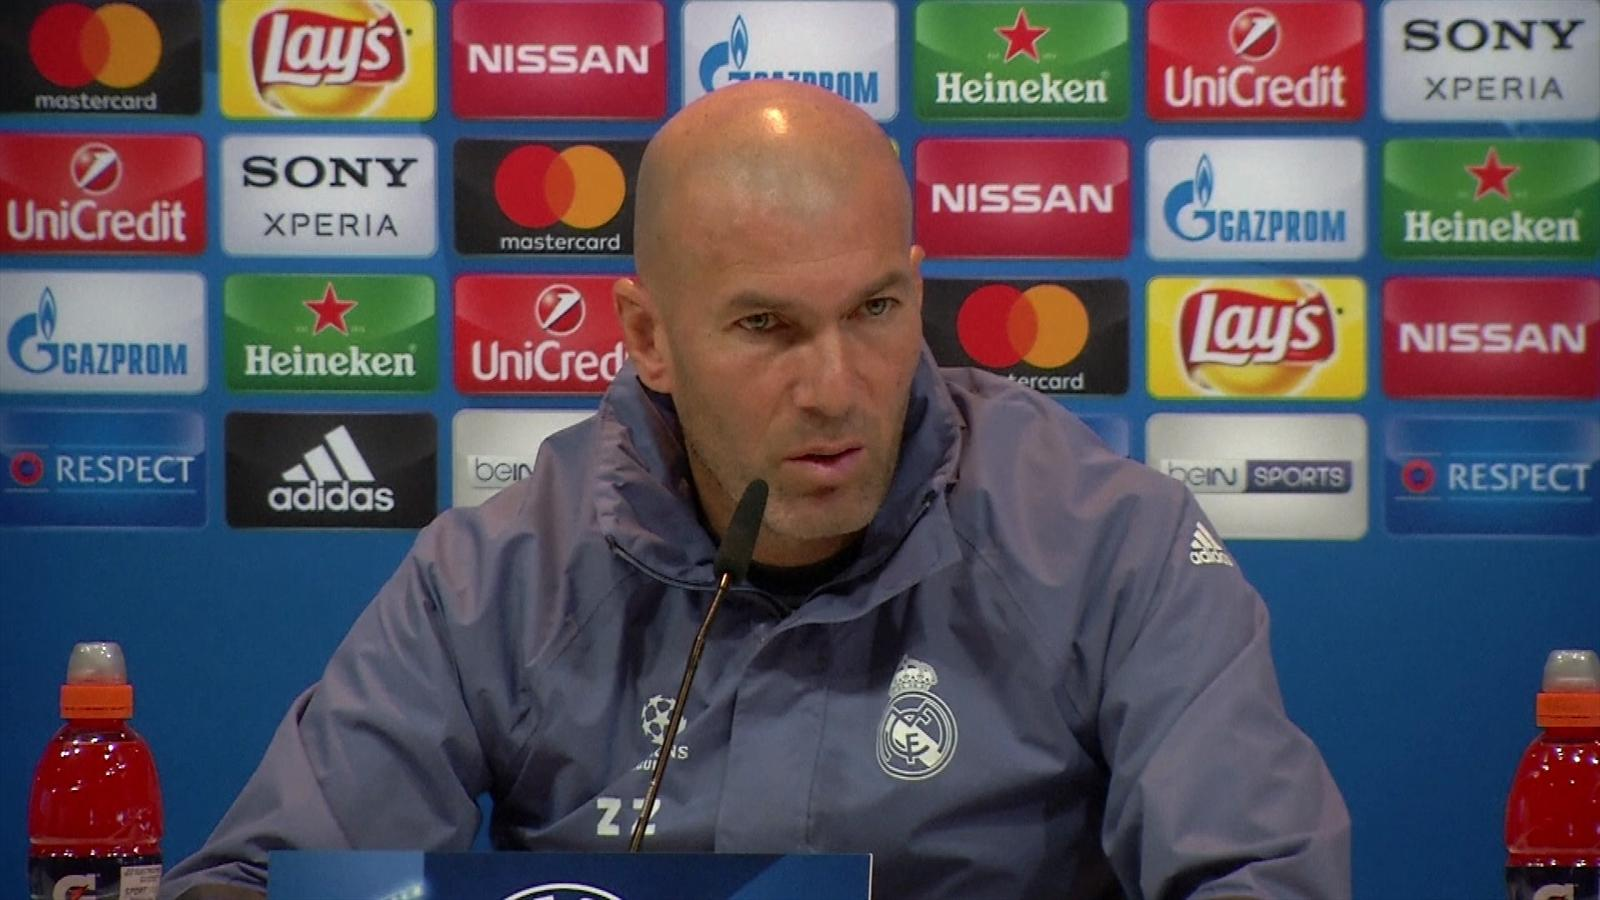 Video zidane bale has recovered but napoli might be - University league tables french ...